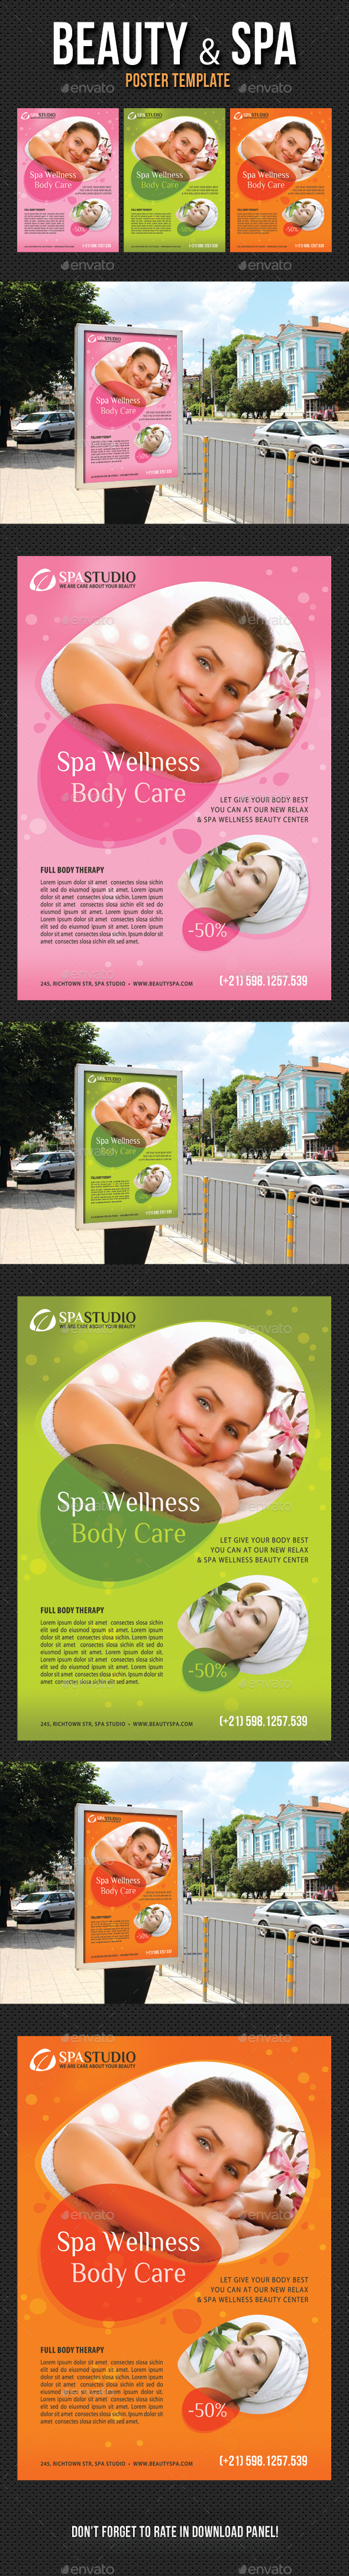 Beauty and Spa Poster Template V06 - Signage Print Templates